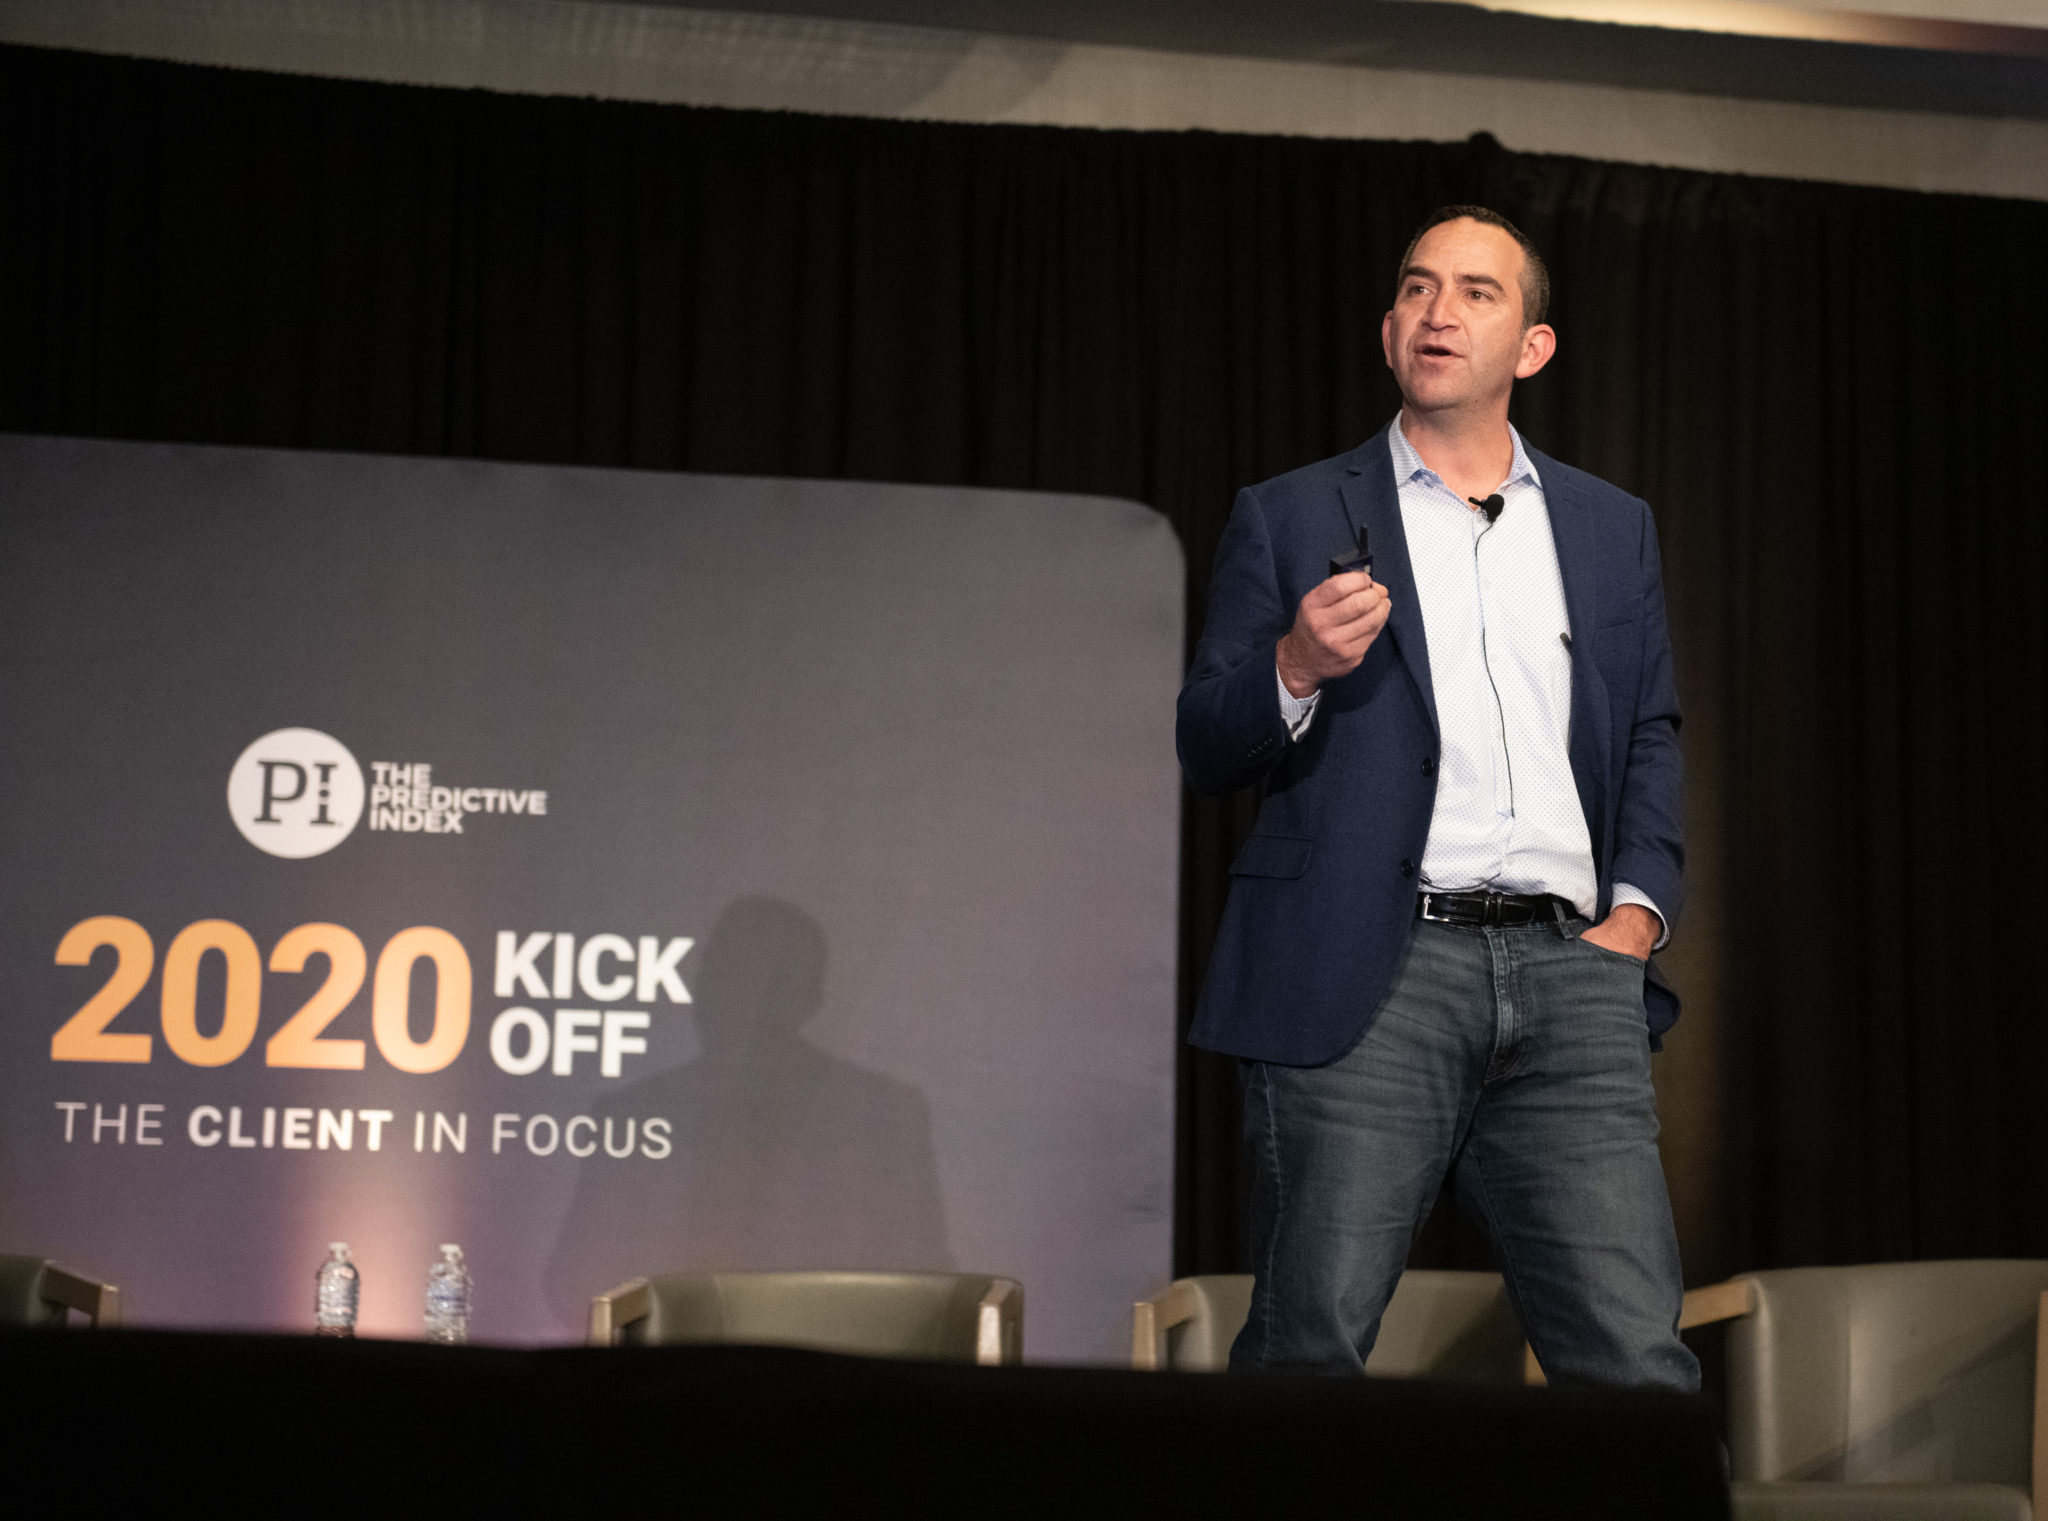 Daniel speaking at kick-off